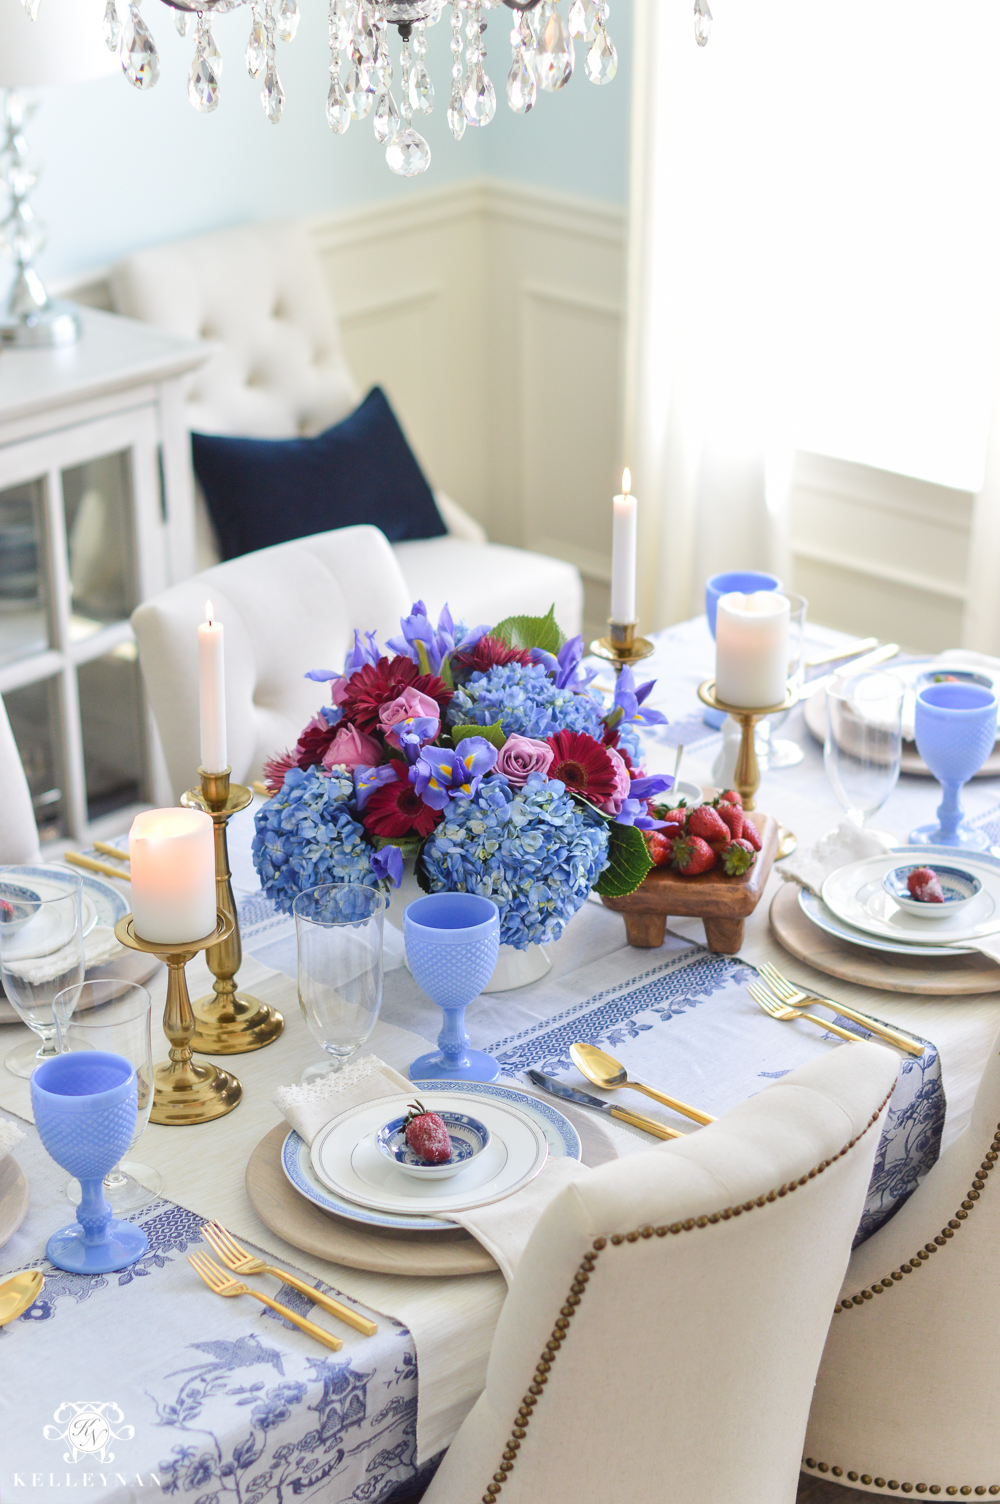 Jewel Tone and Blue and White Table with Strawberries in Elegant Dining Room